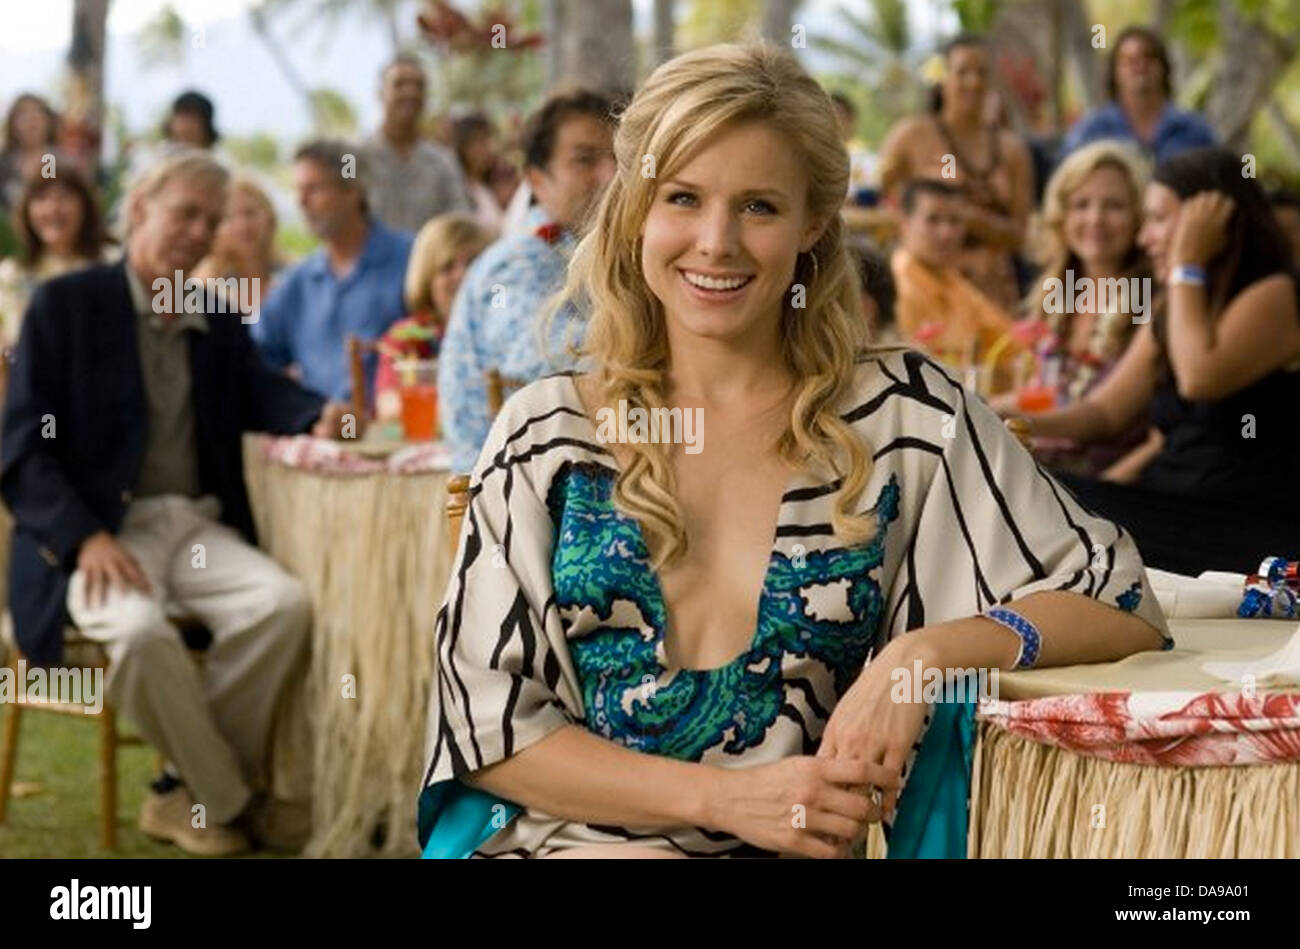 FORGETTING SARAH MARSHALL 2011 Universal Pictures film with Kristen Bell - Stock Image